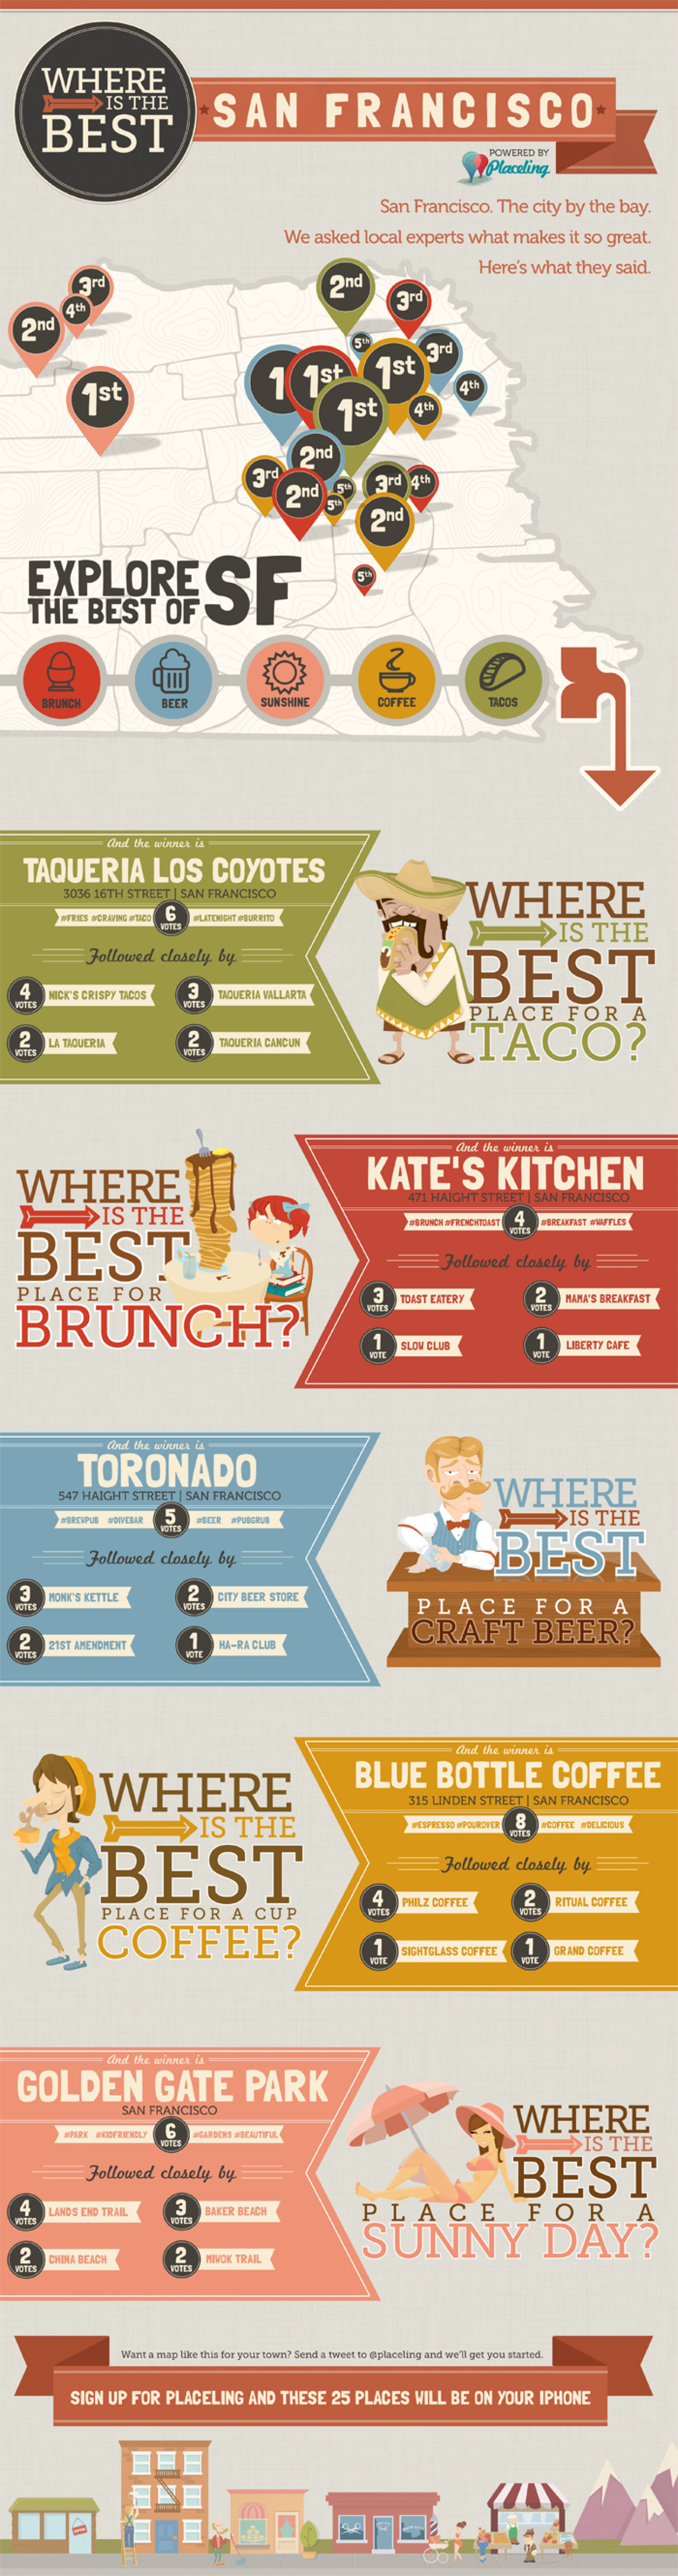 The Best of SF Infographic